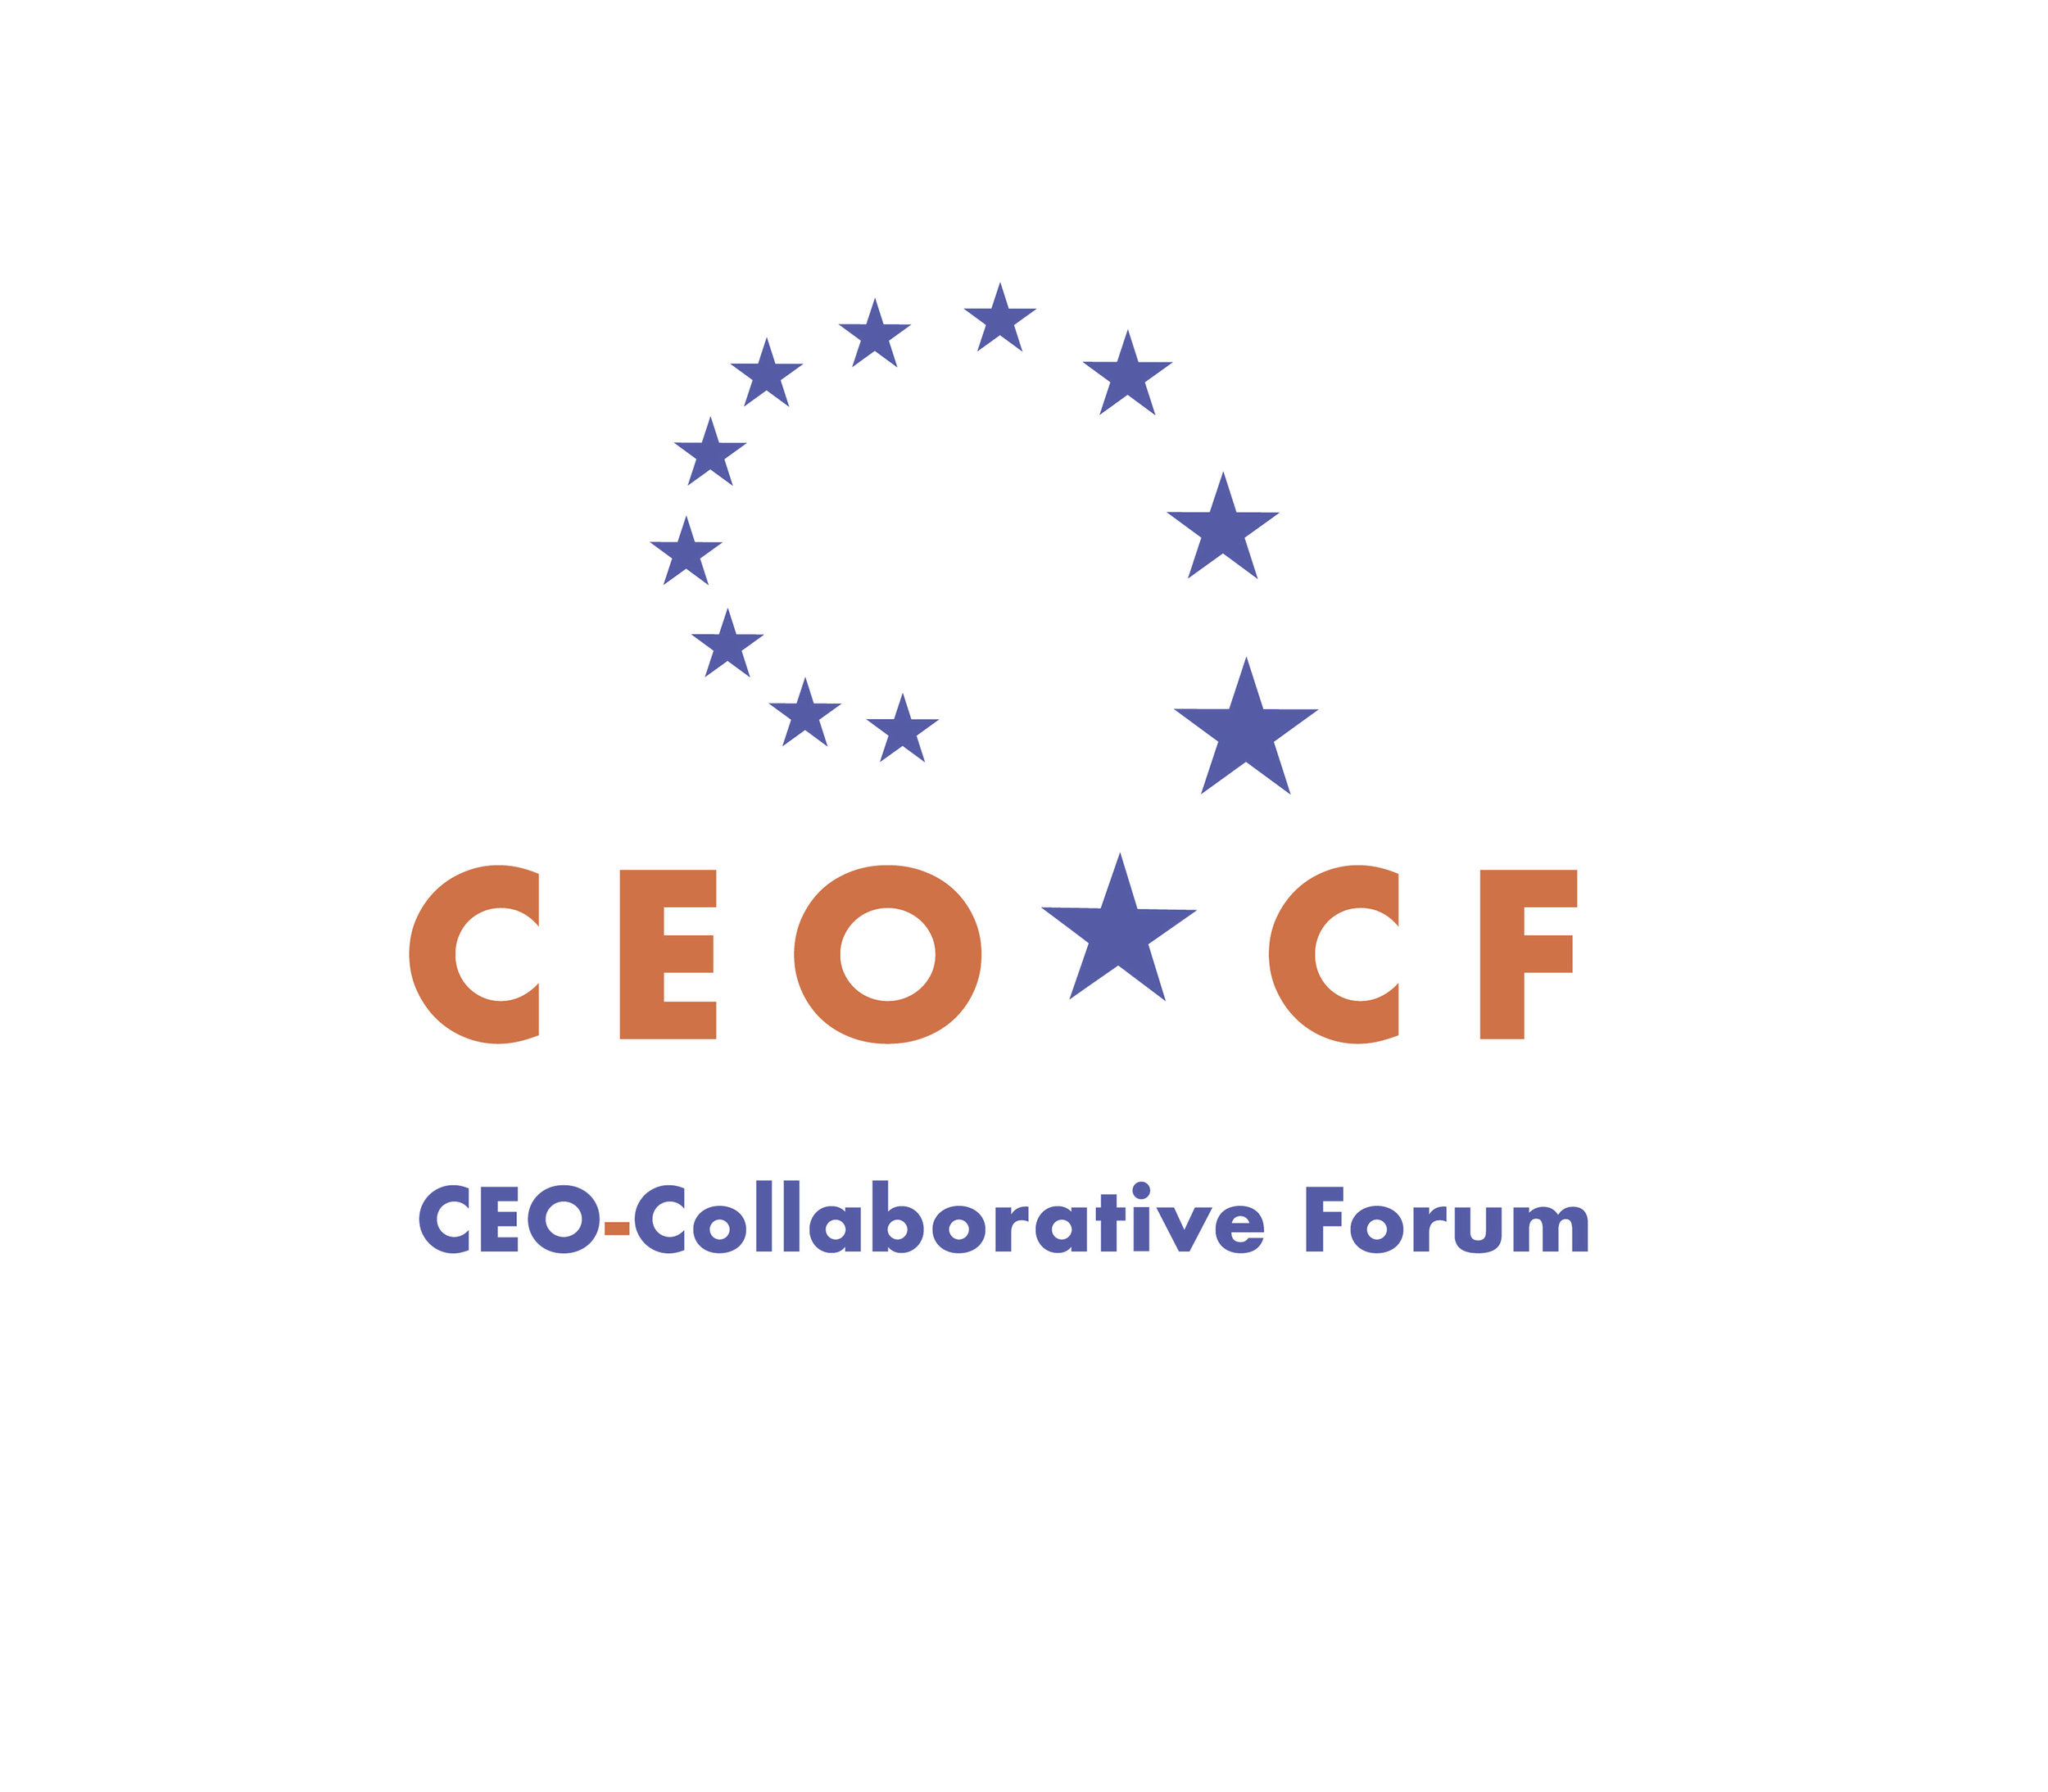 CEO-Collaborative Form